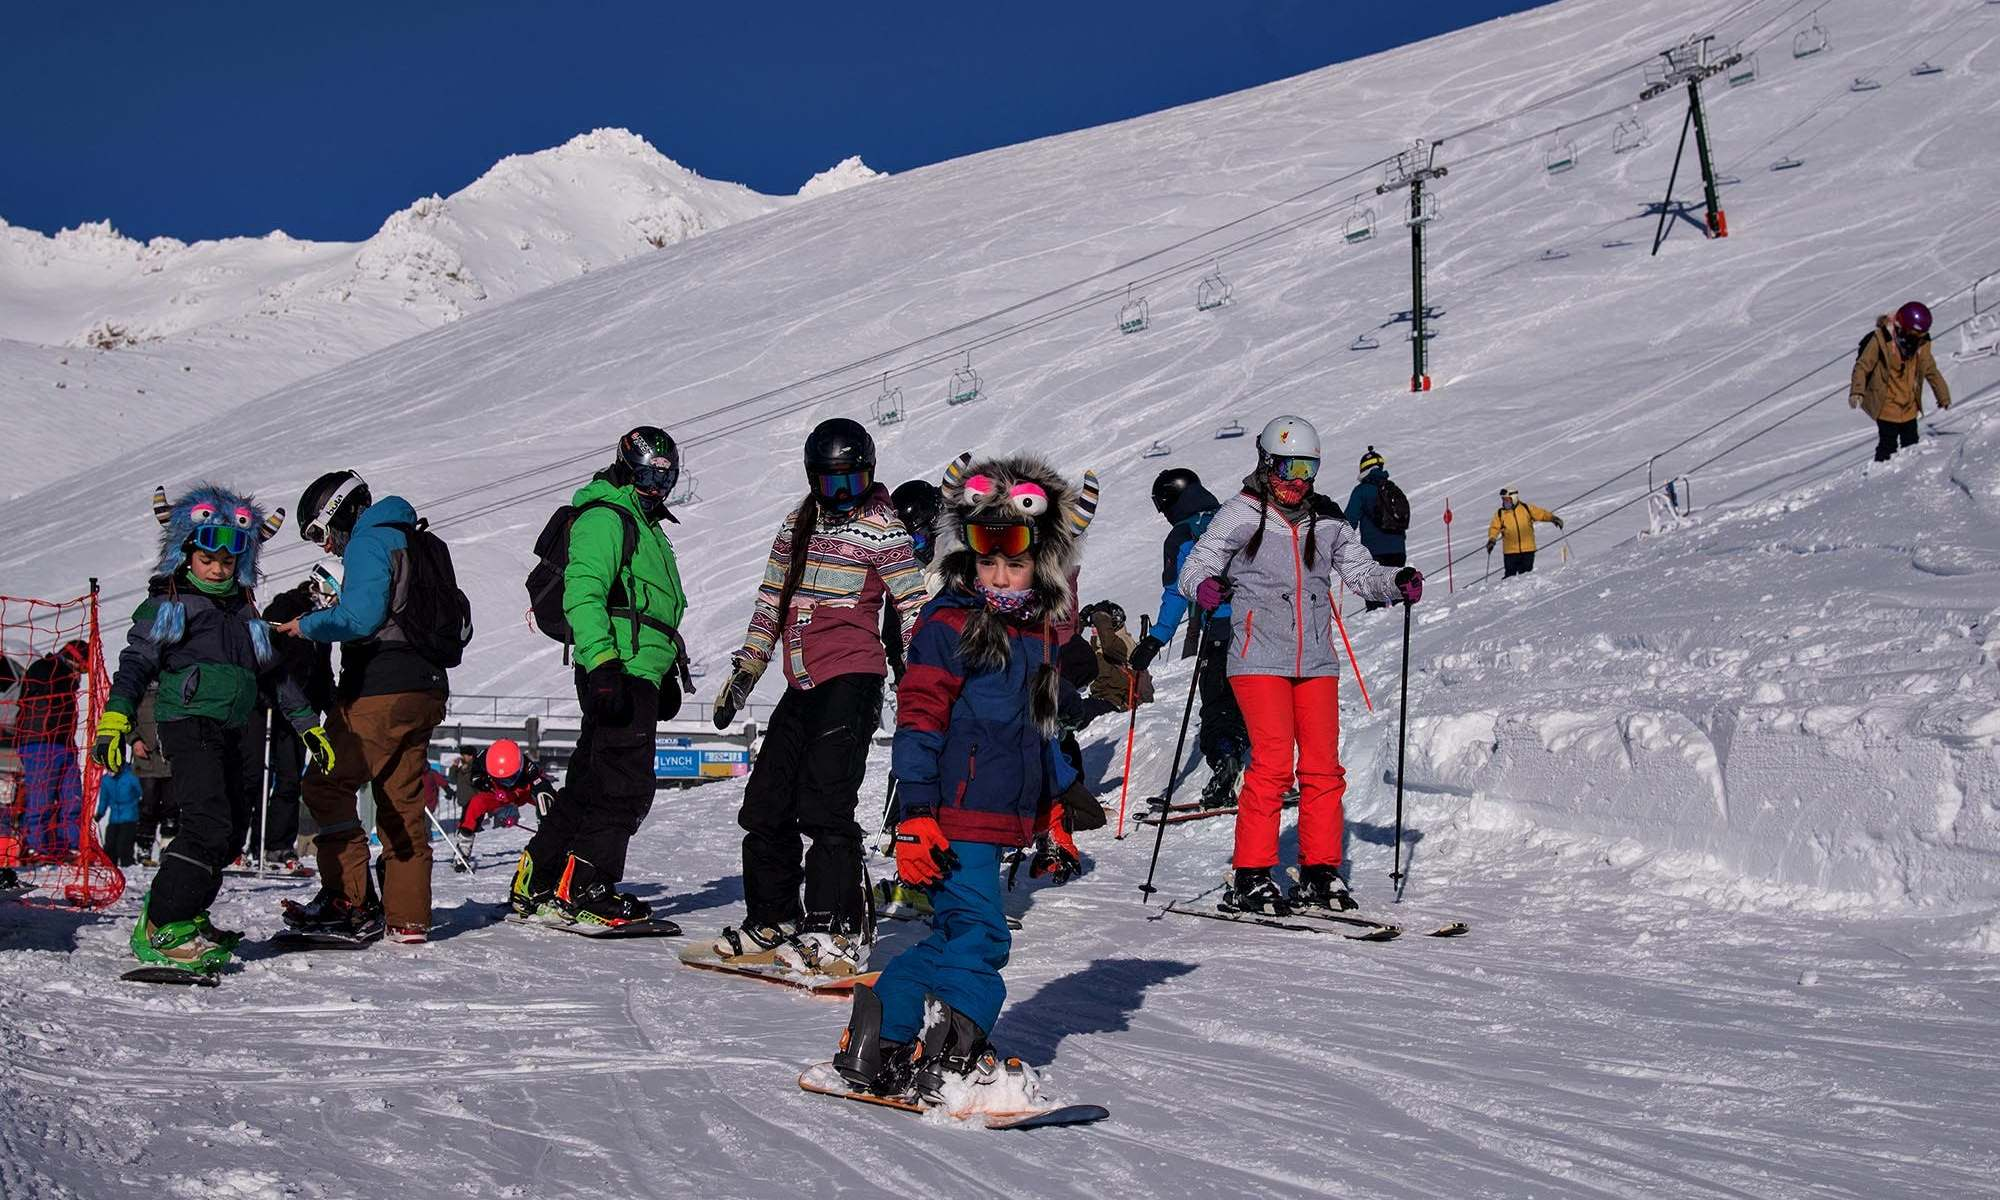 Catedral Alta Patagonia, the resort of Bariloche, has opened yesterday. Photo: Diario La Nación. Cerro Catedral has opened: skiing for locals with masks and record snow levels.